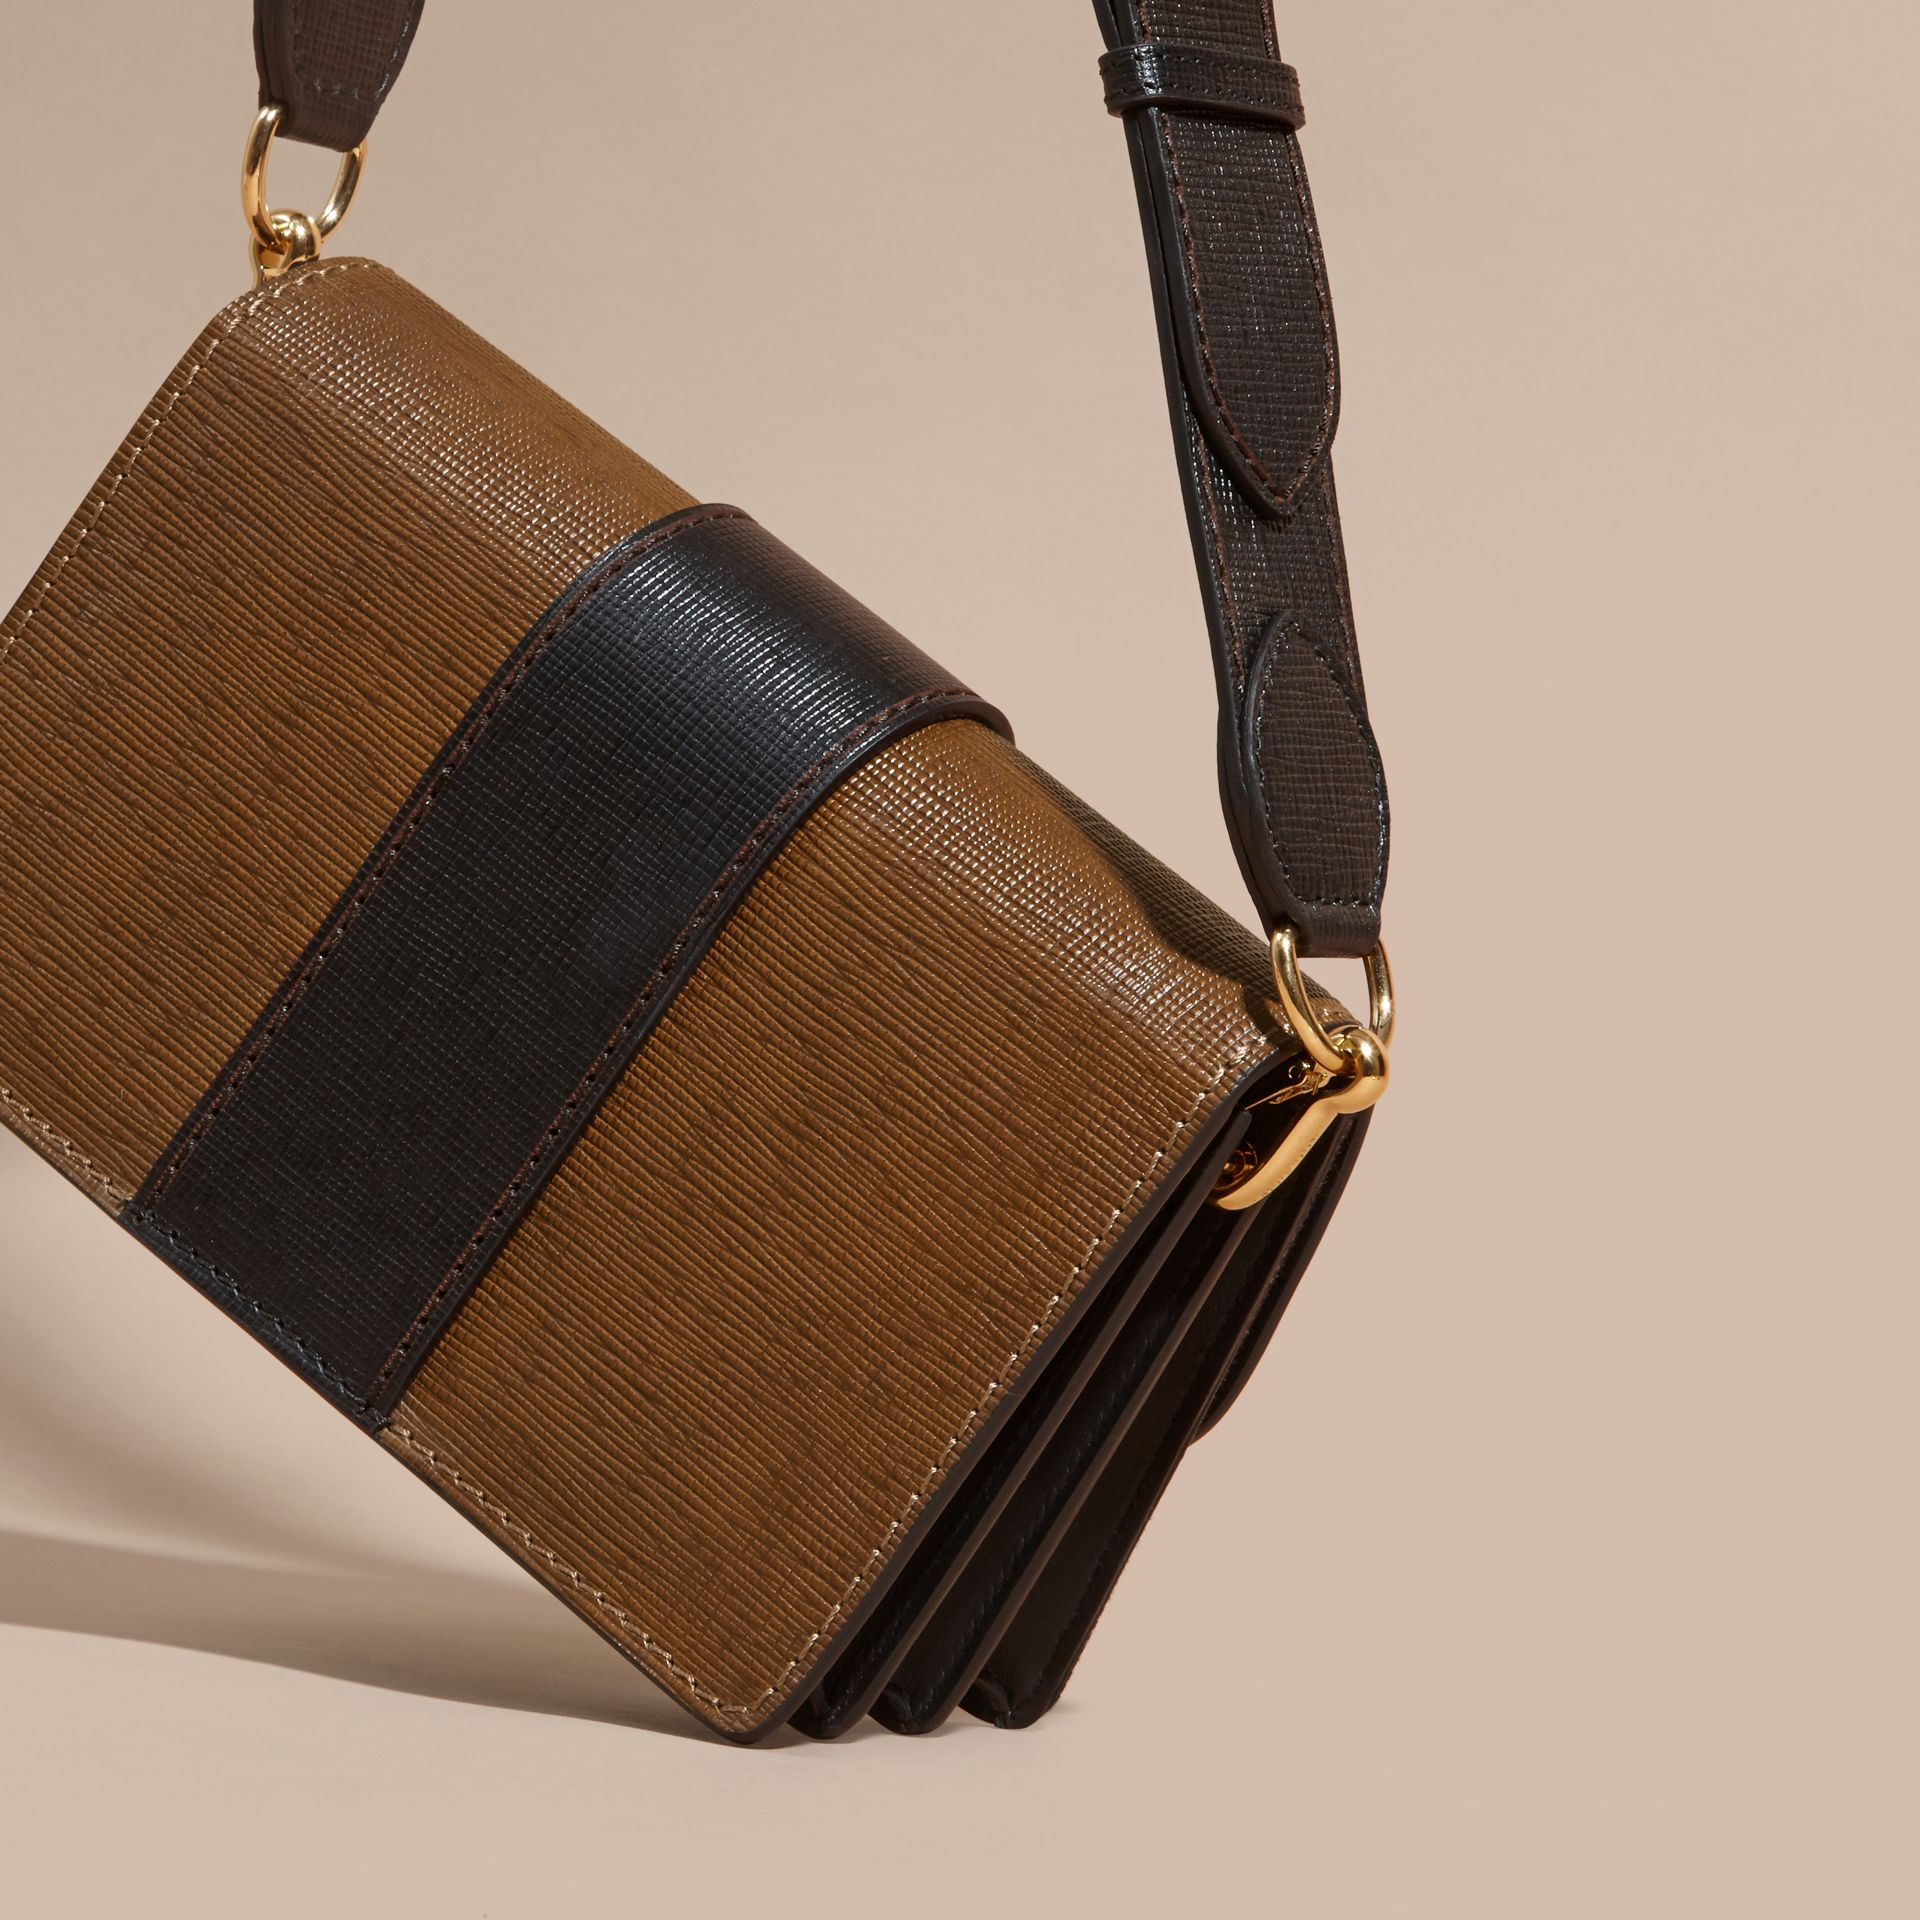 Tan/black The Medium Buckle Bag in House Check and Textured Leather Tan/black - gallery image 5